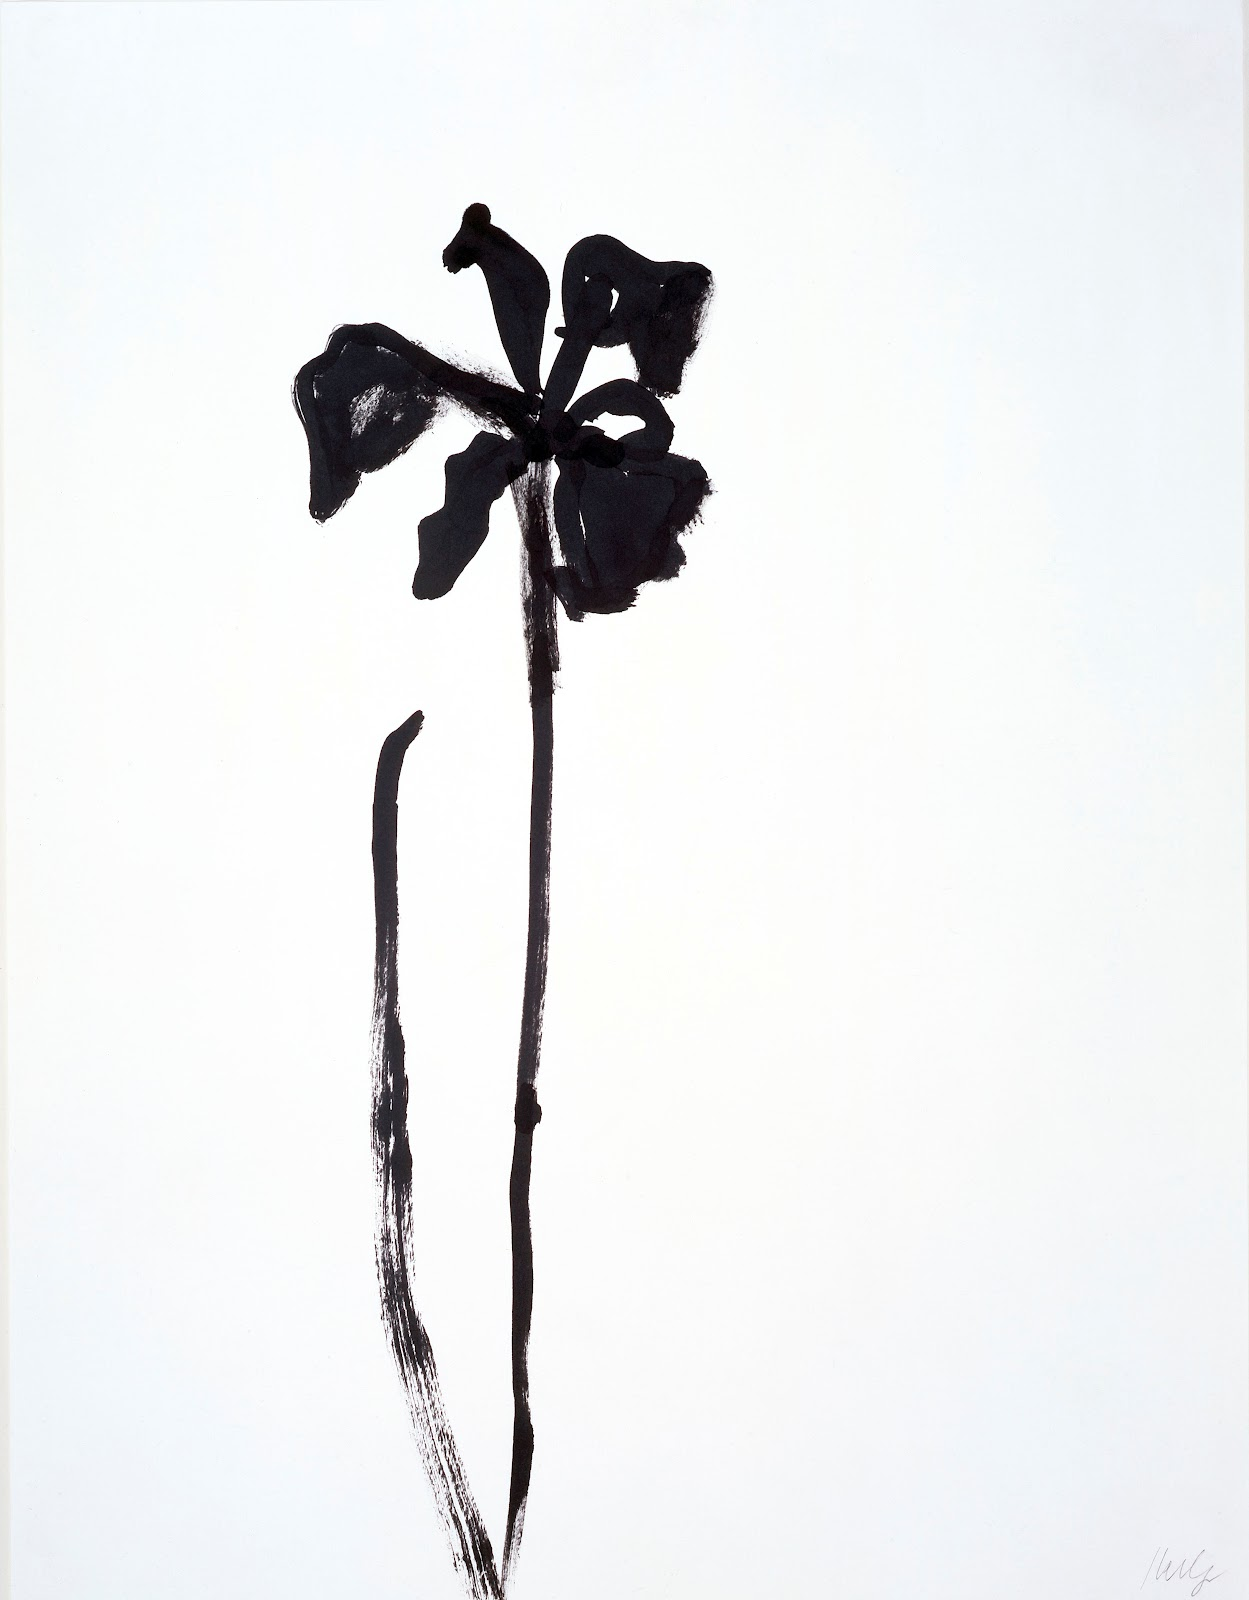 Ellsworth Kelly, Siberian Iris, 1989, ink on paper, 29 3/4 x 23 inches, private